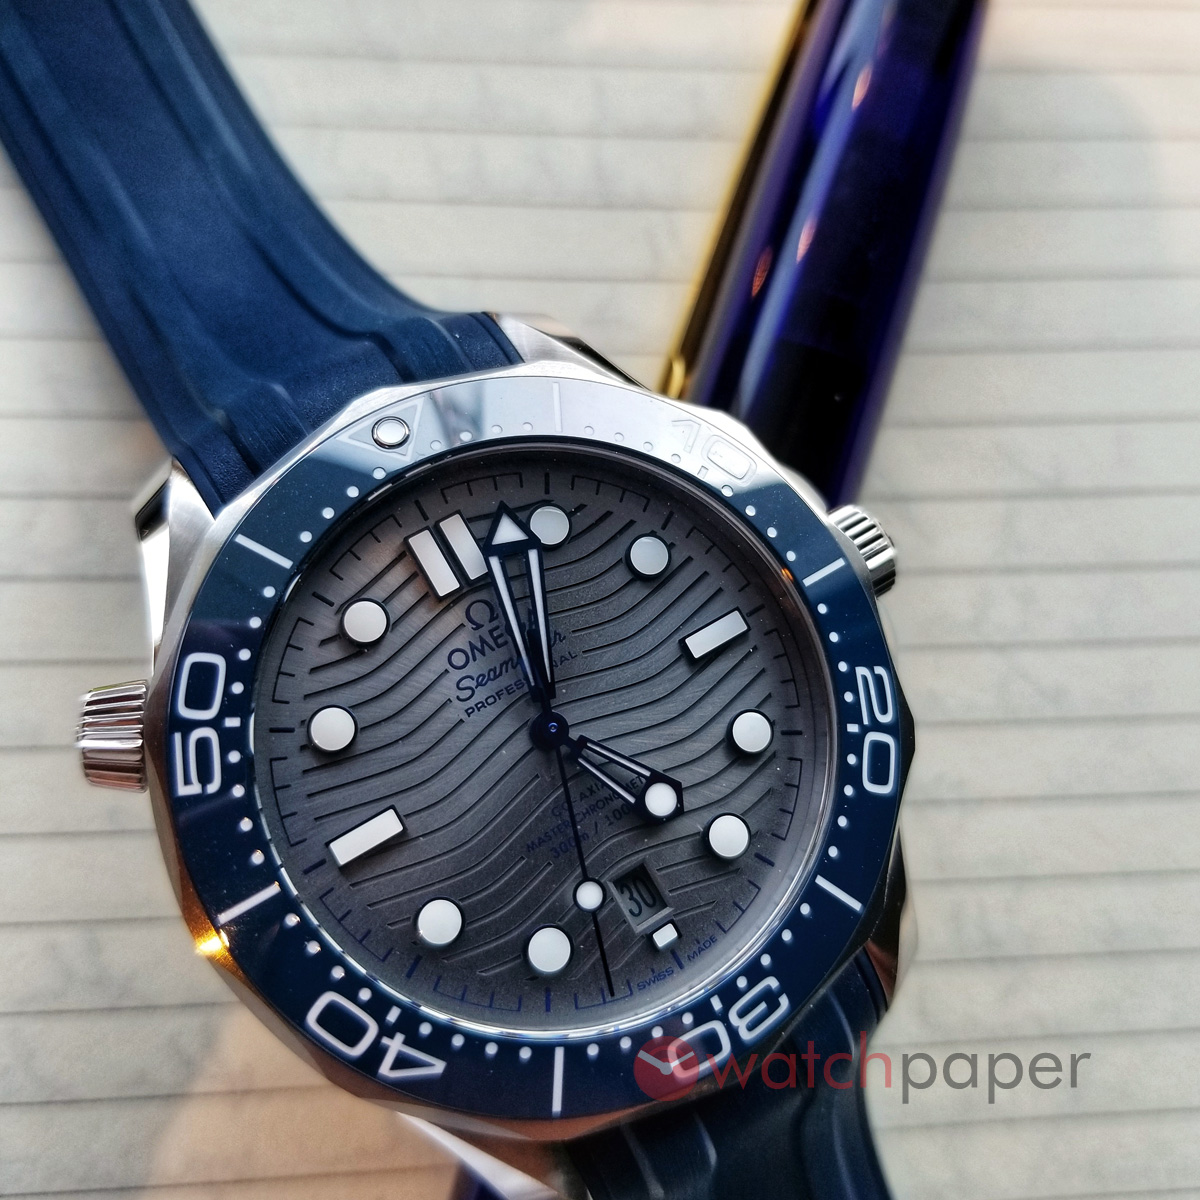 Omega Seamaster Diver 300m A Week On The Wrist Watchpaper